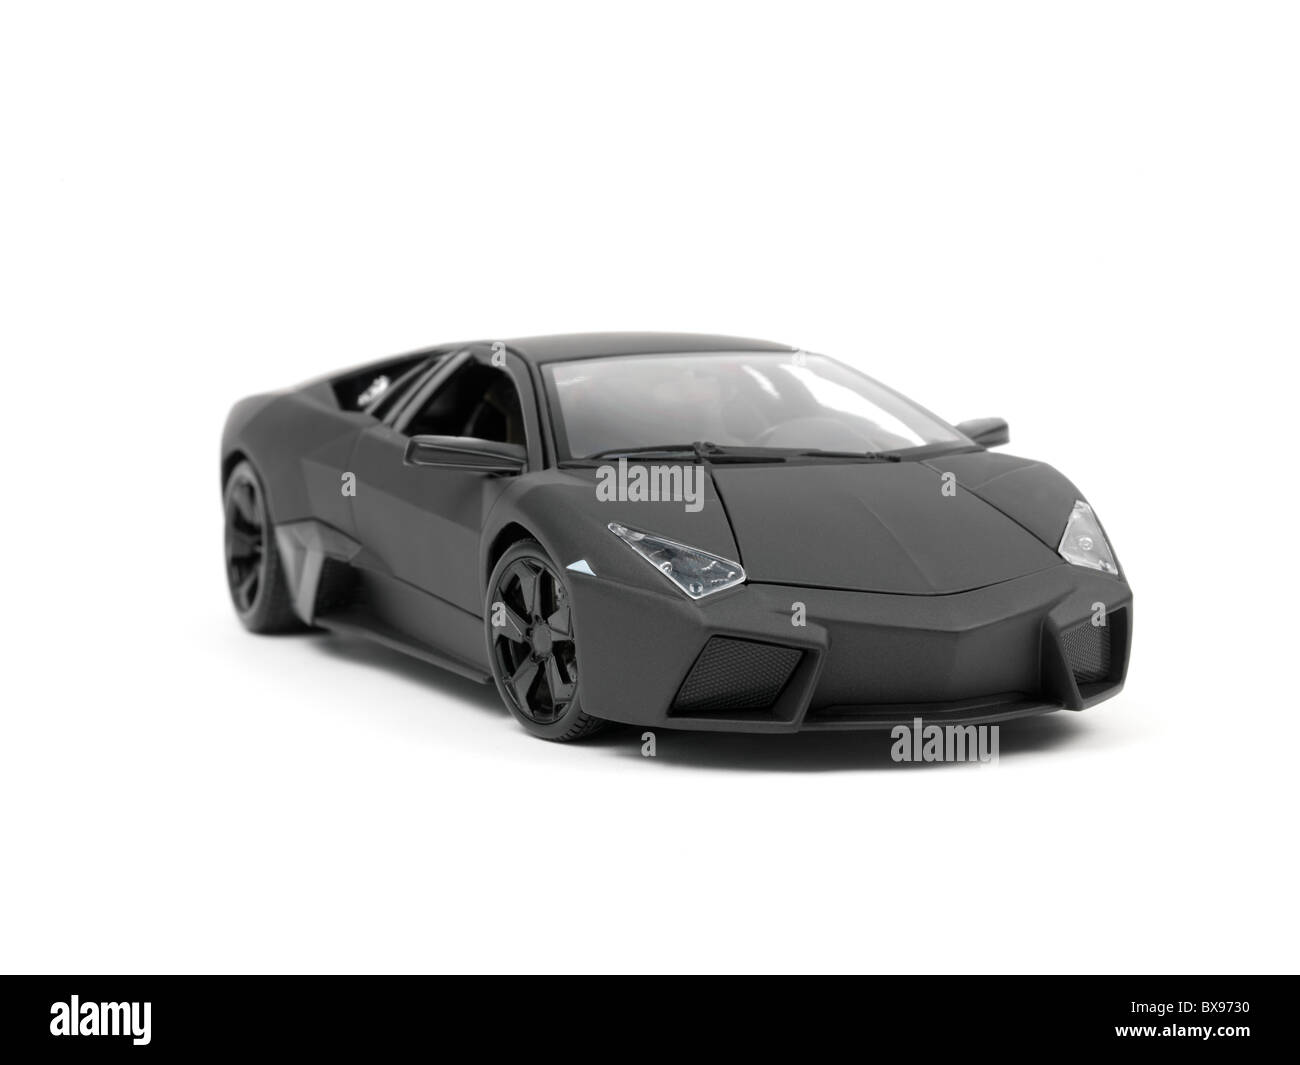 A Lamborghini Reventon Model Car Isolated Against A White Background